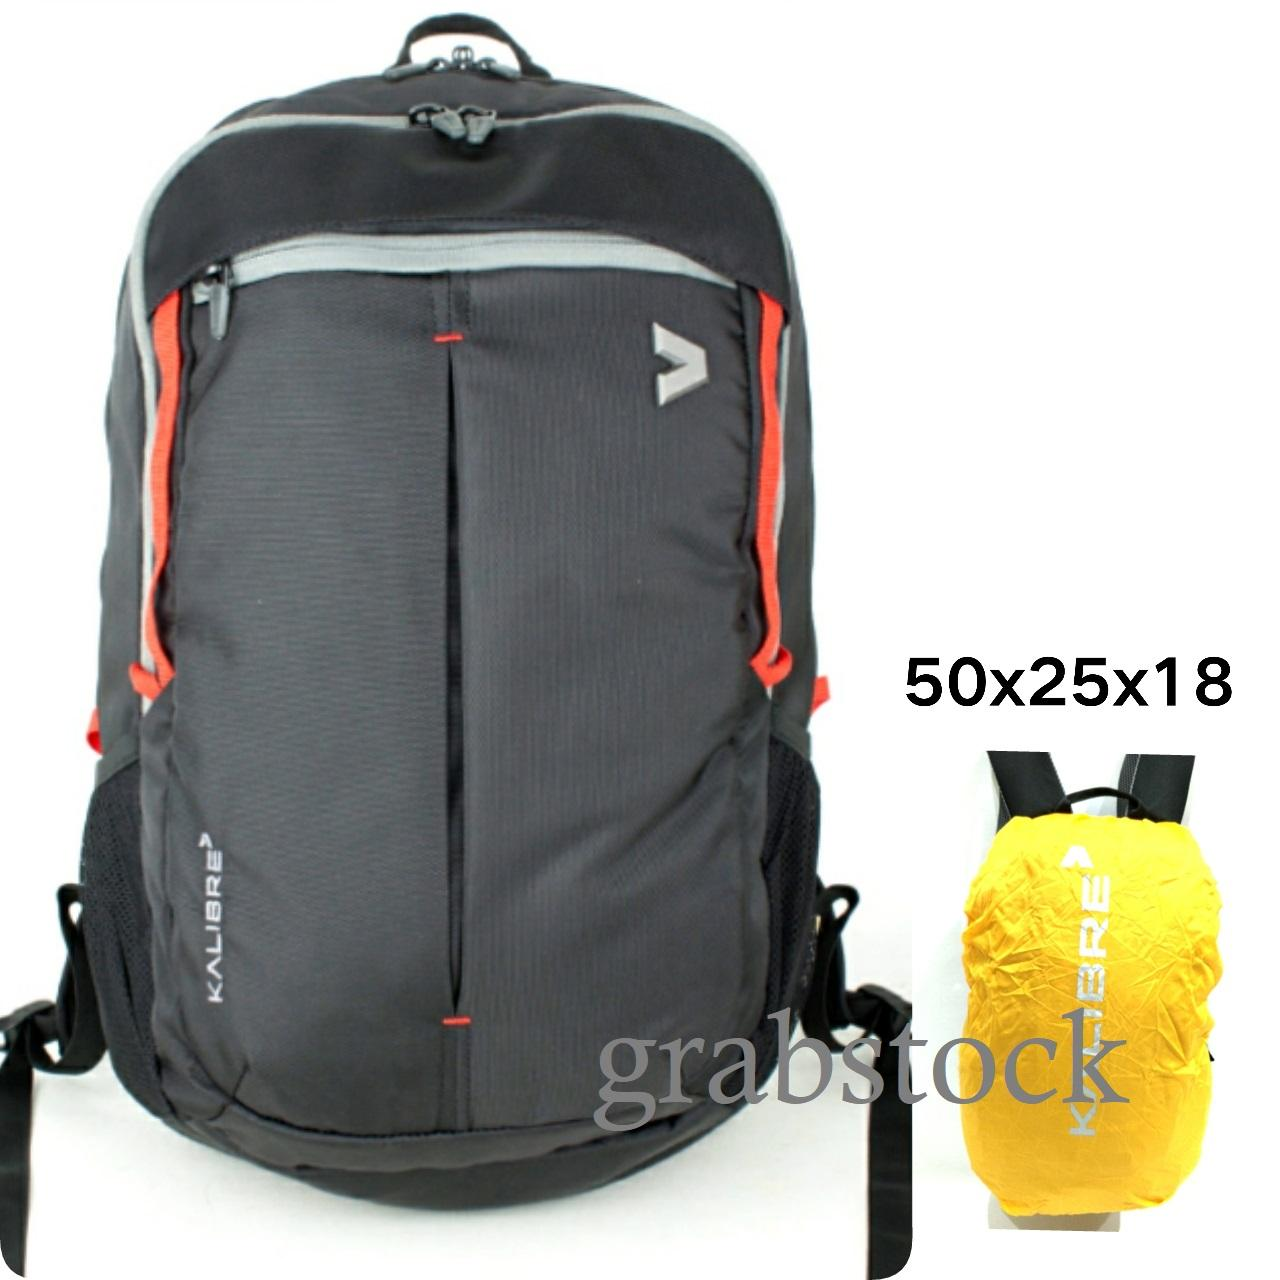 Kalibre Original Tas Ransel Laptop Plus Raincover Backpack Balfour 0ce6aa0c4a